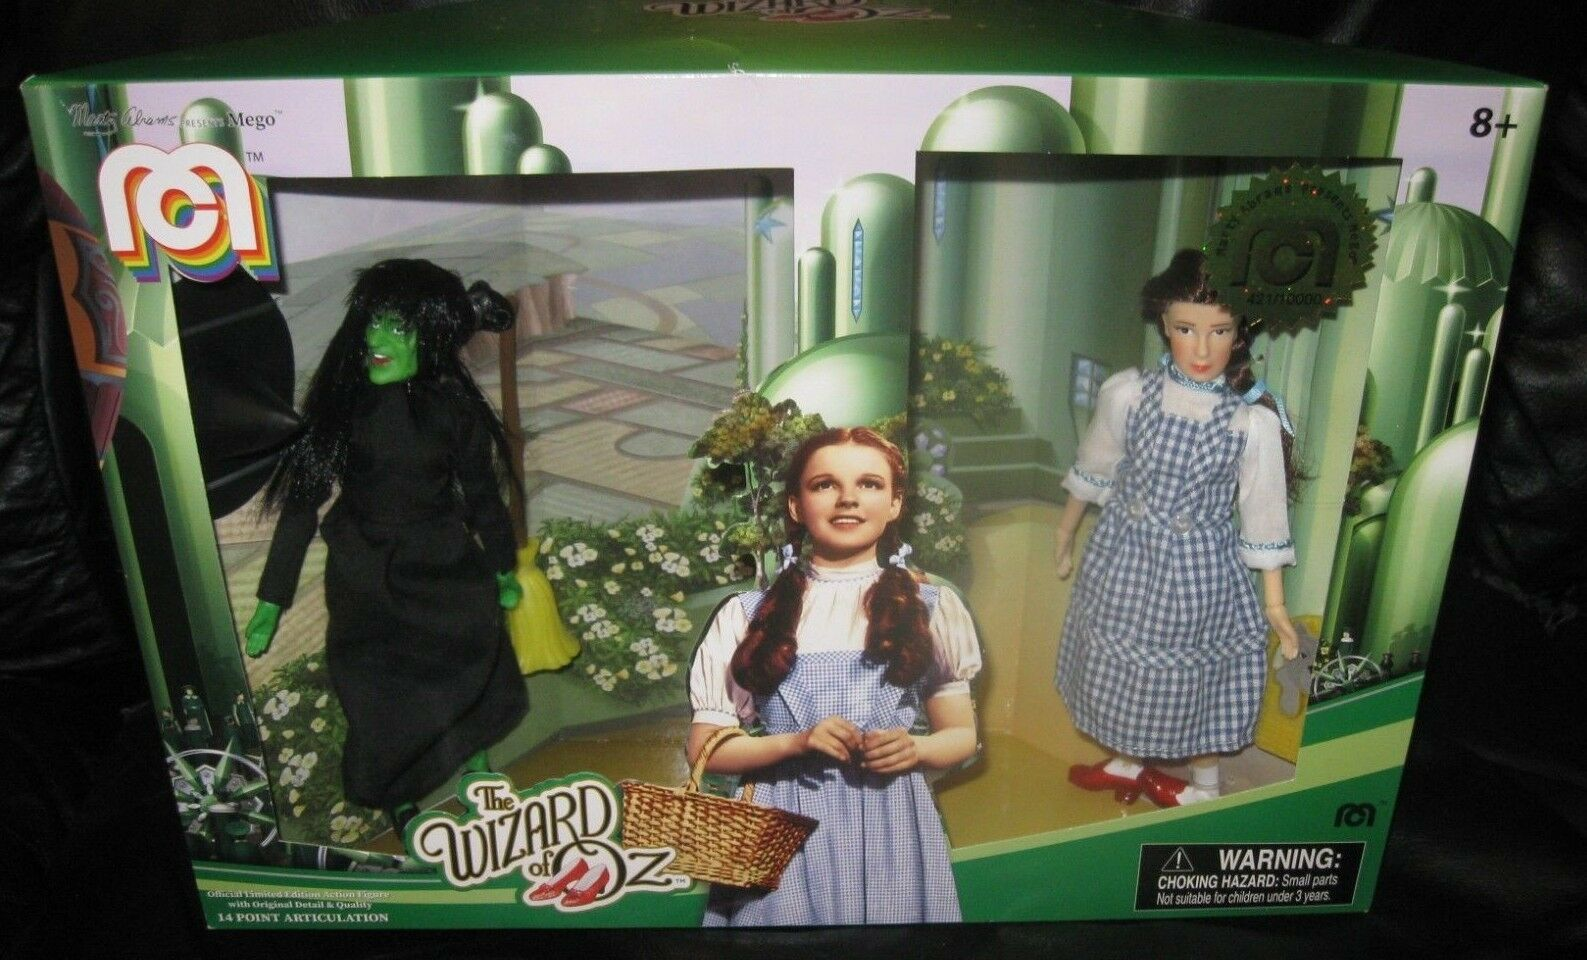 2018 MEGO Ltd Edition Target Classic Figure Set - Wizard of Oz - Dgoldthy & Witch